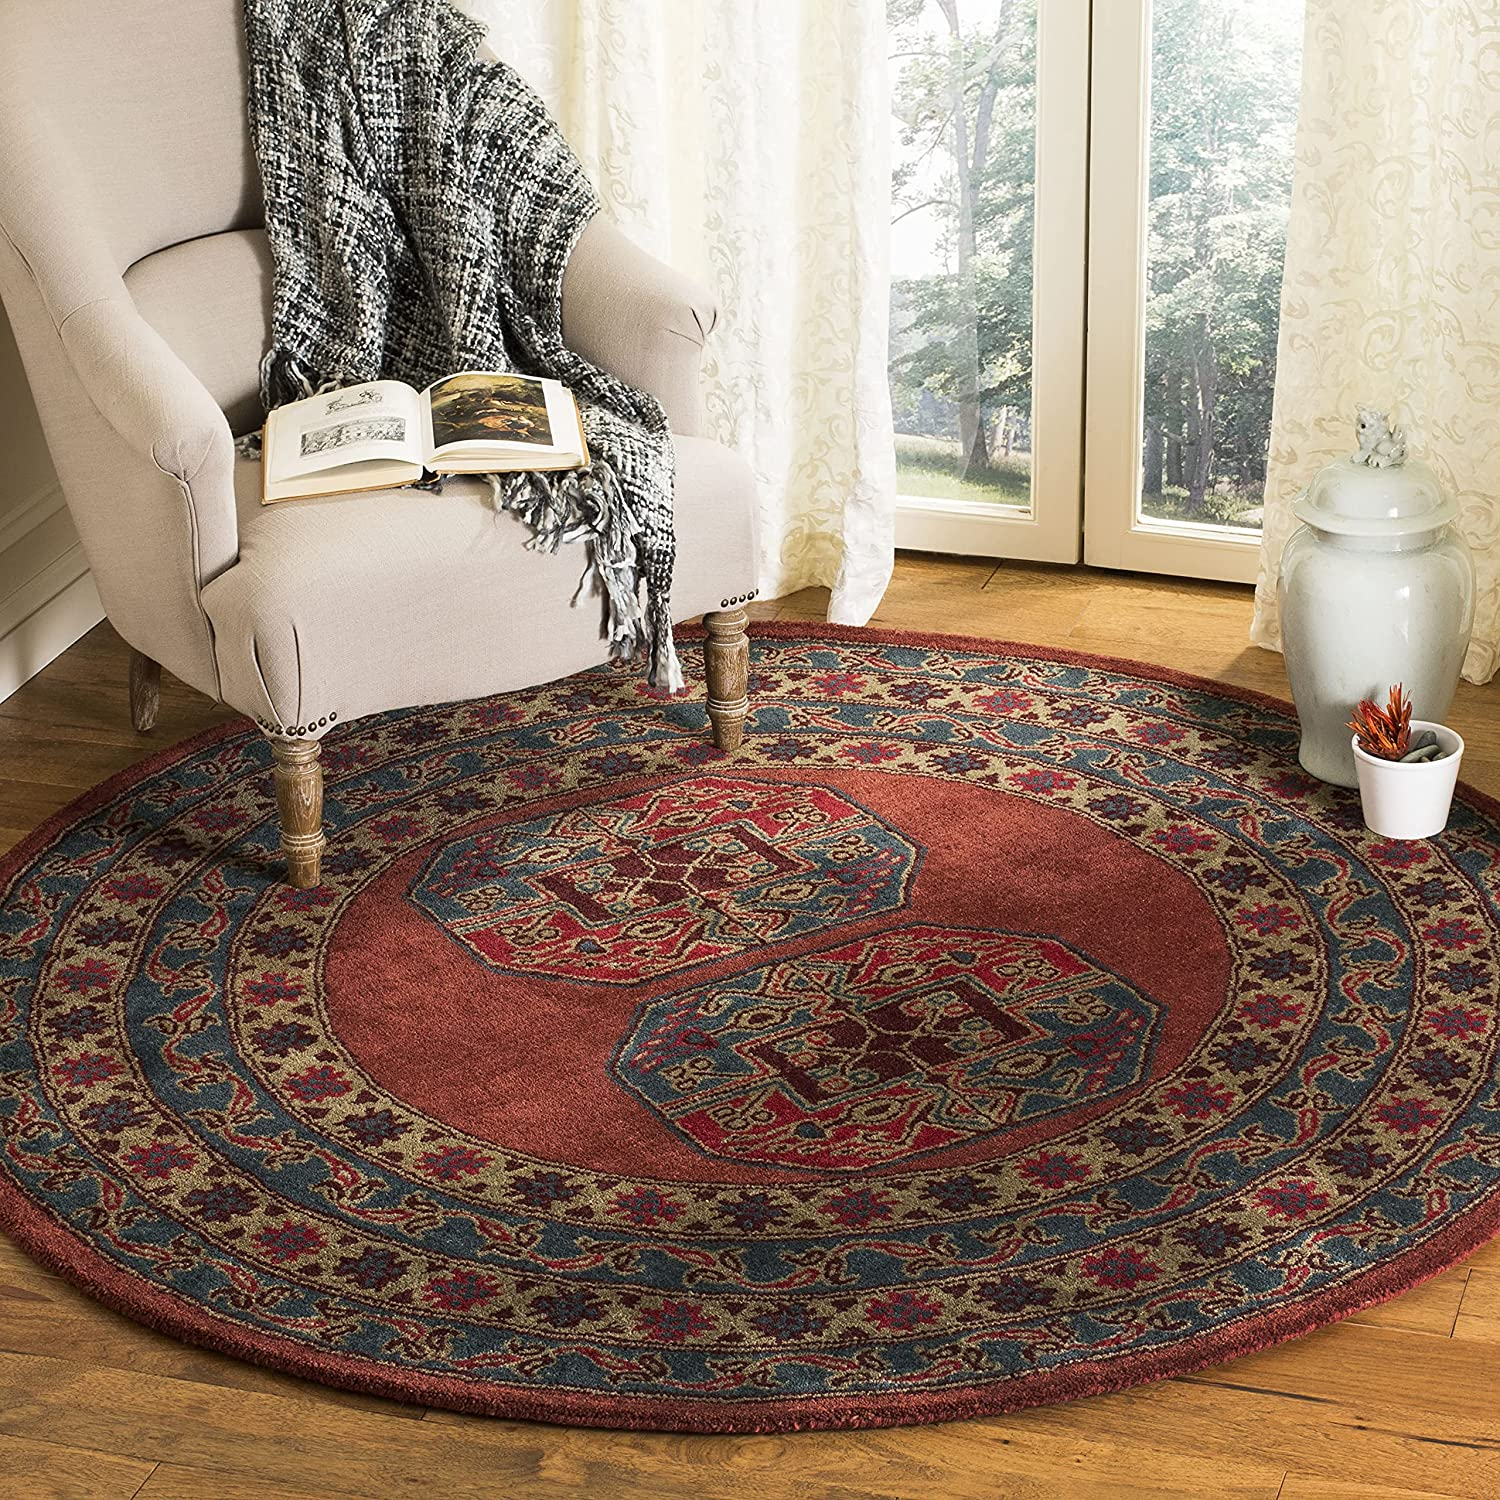 Safavieh Heritage Collection Free shipping on posting reviews Max 44% OFF HG919Q Handmade Orienta Traditional